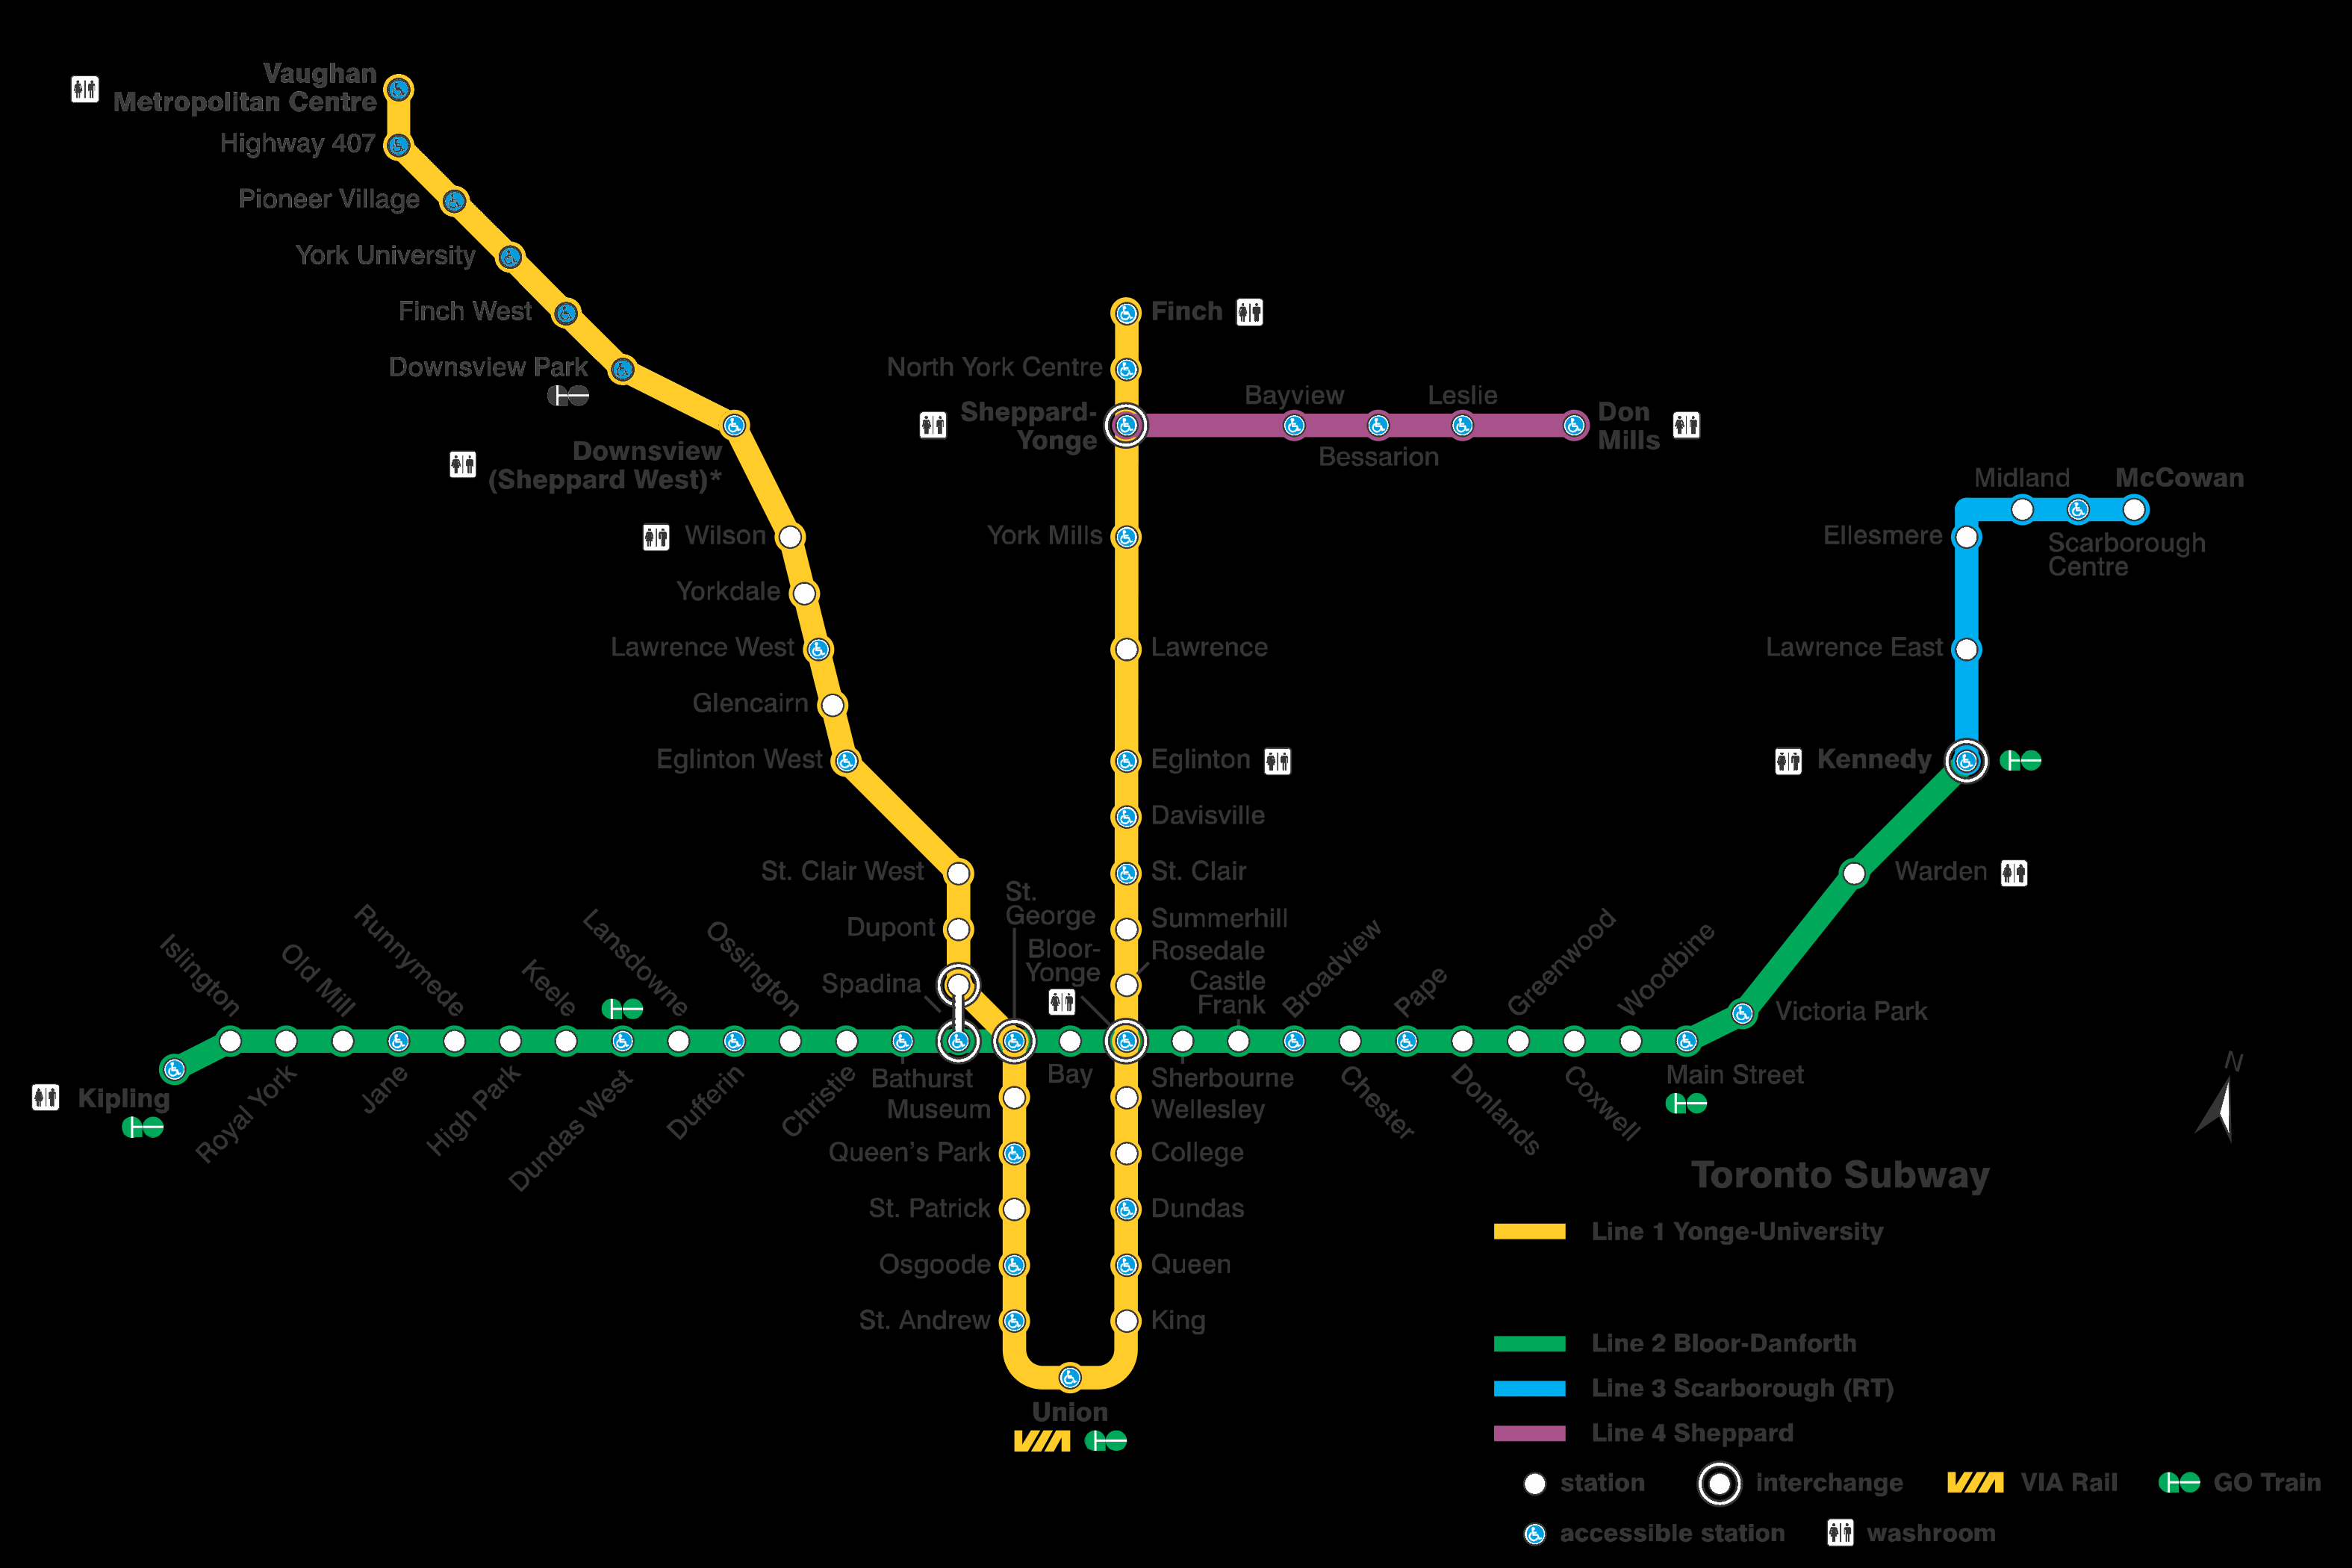 Toronto Subway Map.Toronto Subway System Info Interactive Ttc Subway Map